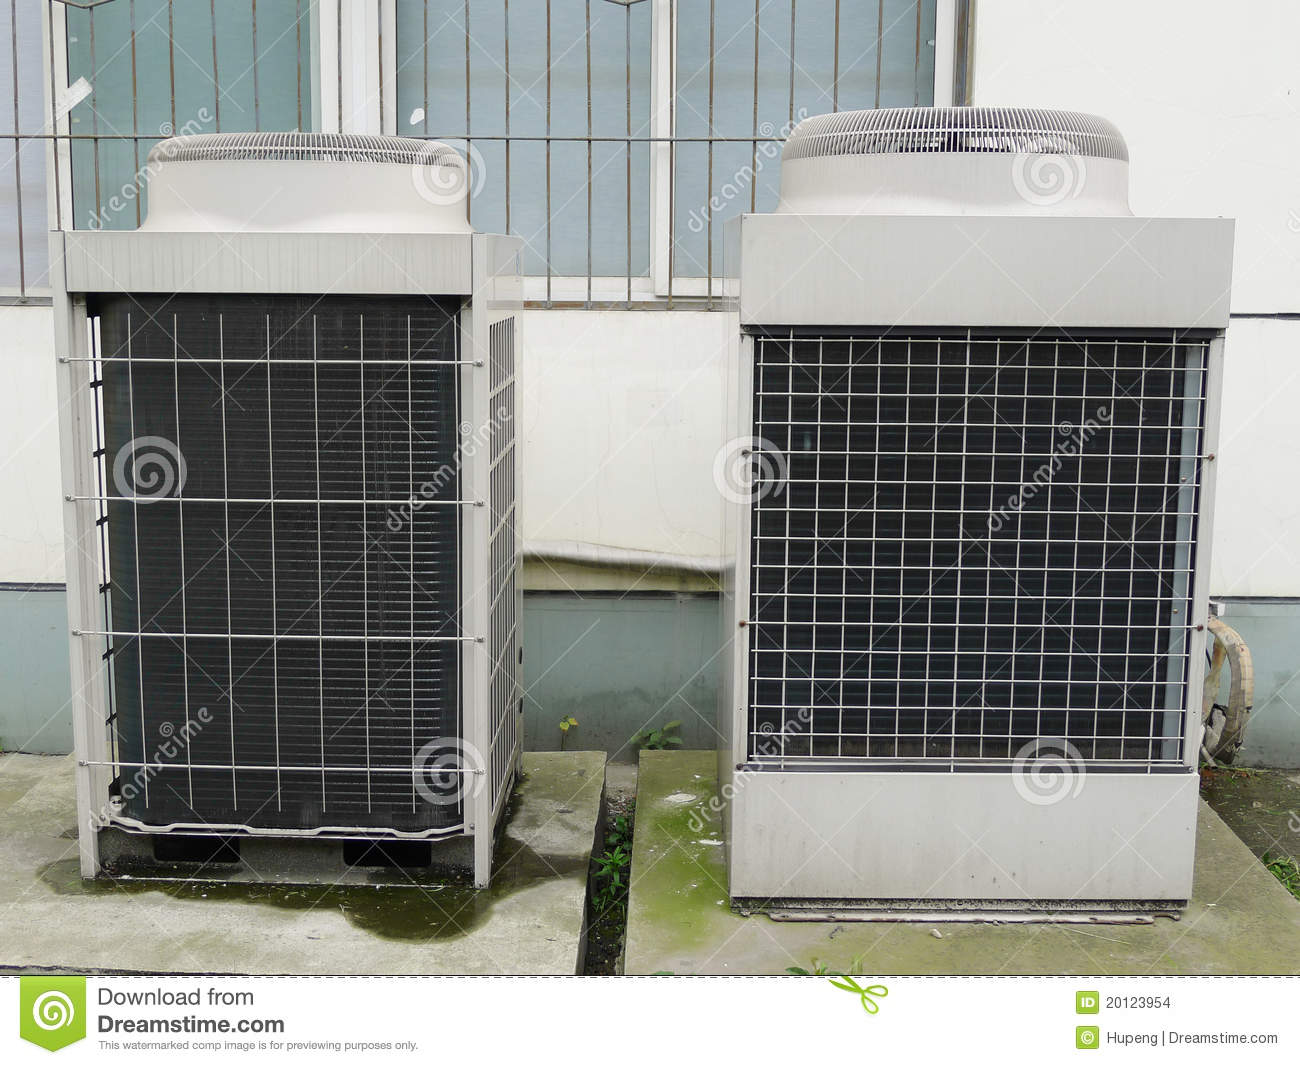 Residential air conditioner condenser unit outside a house. #676B48